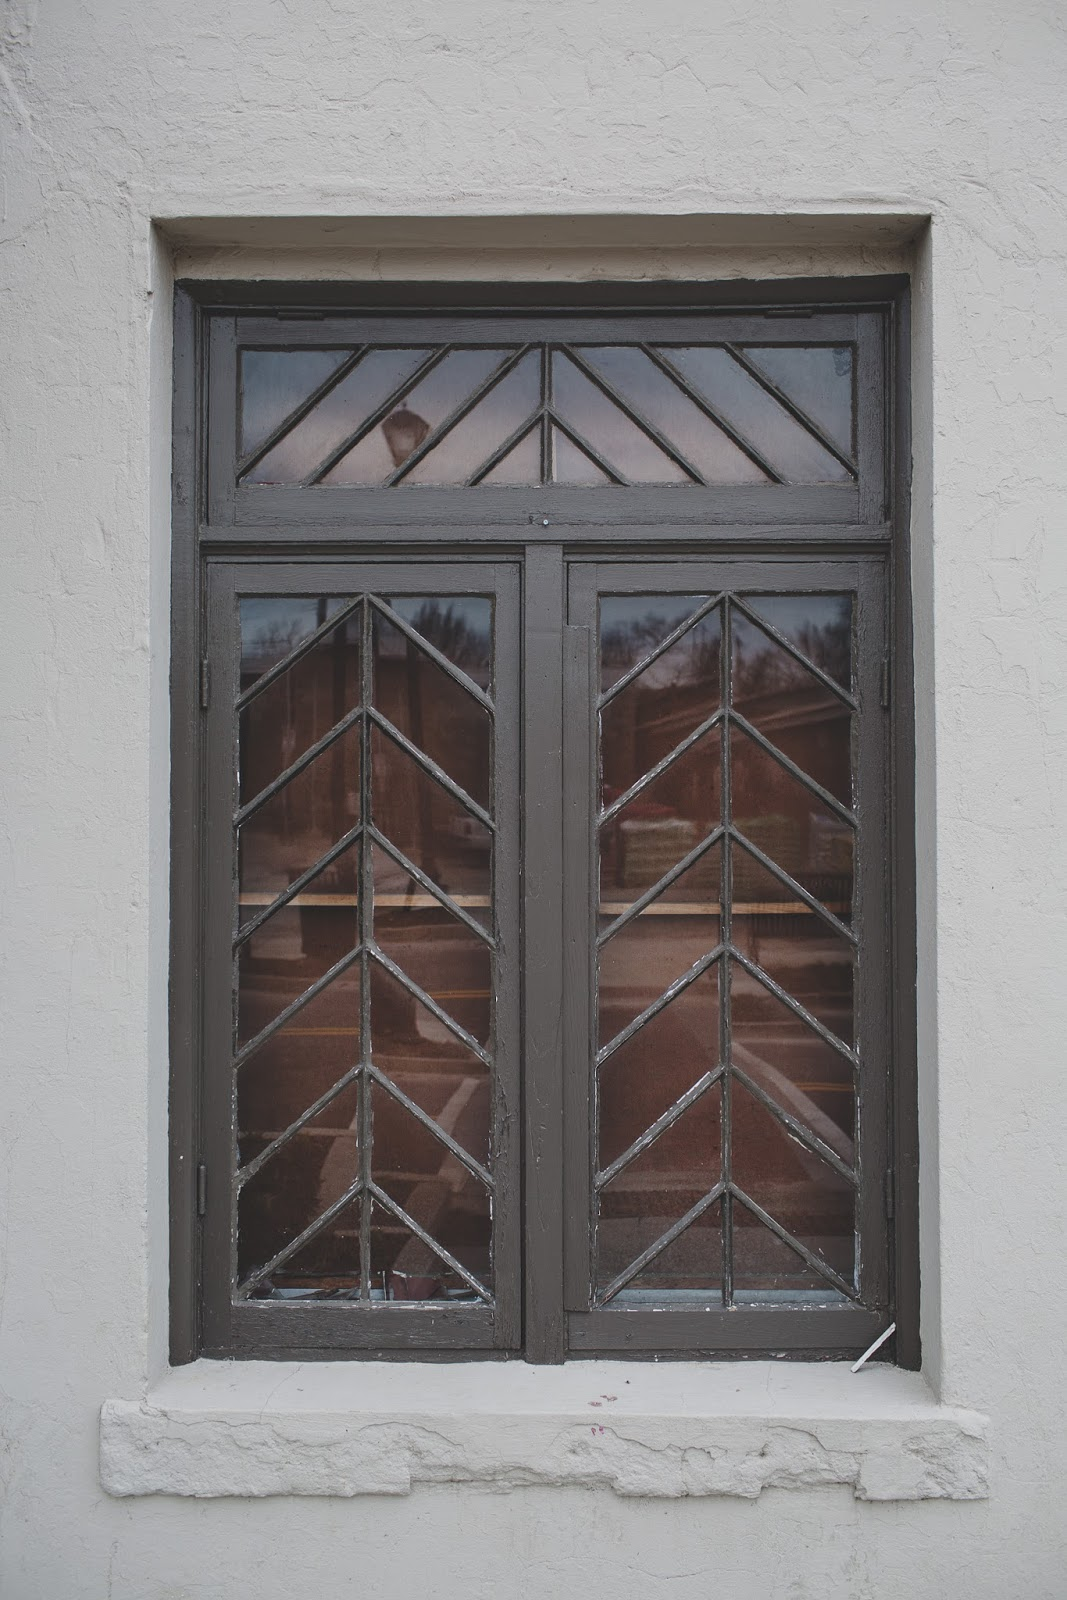 Art deco chevron window of the Bells Theatre. Please donate and help revive our theatre! - bit.ly/bellstheare